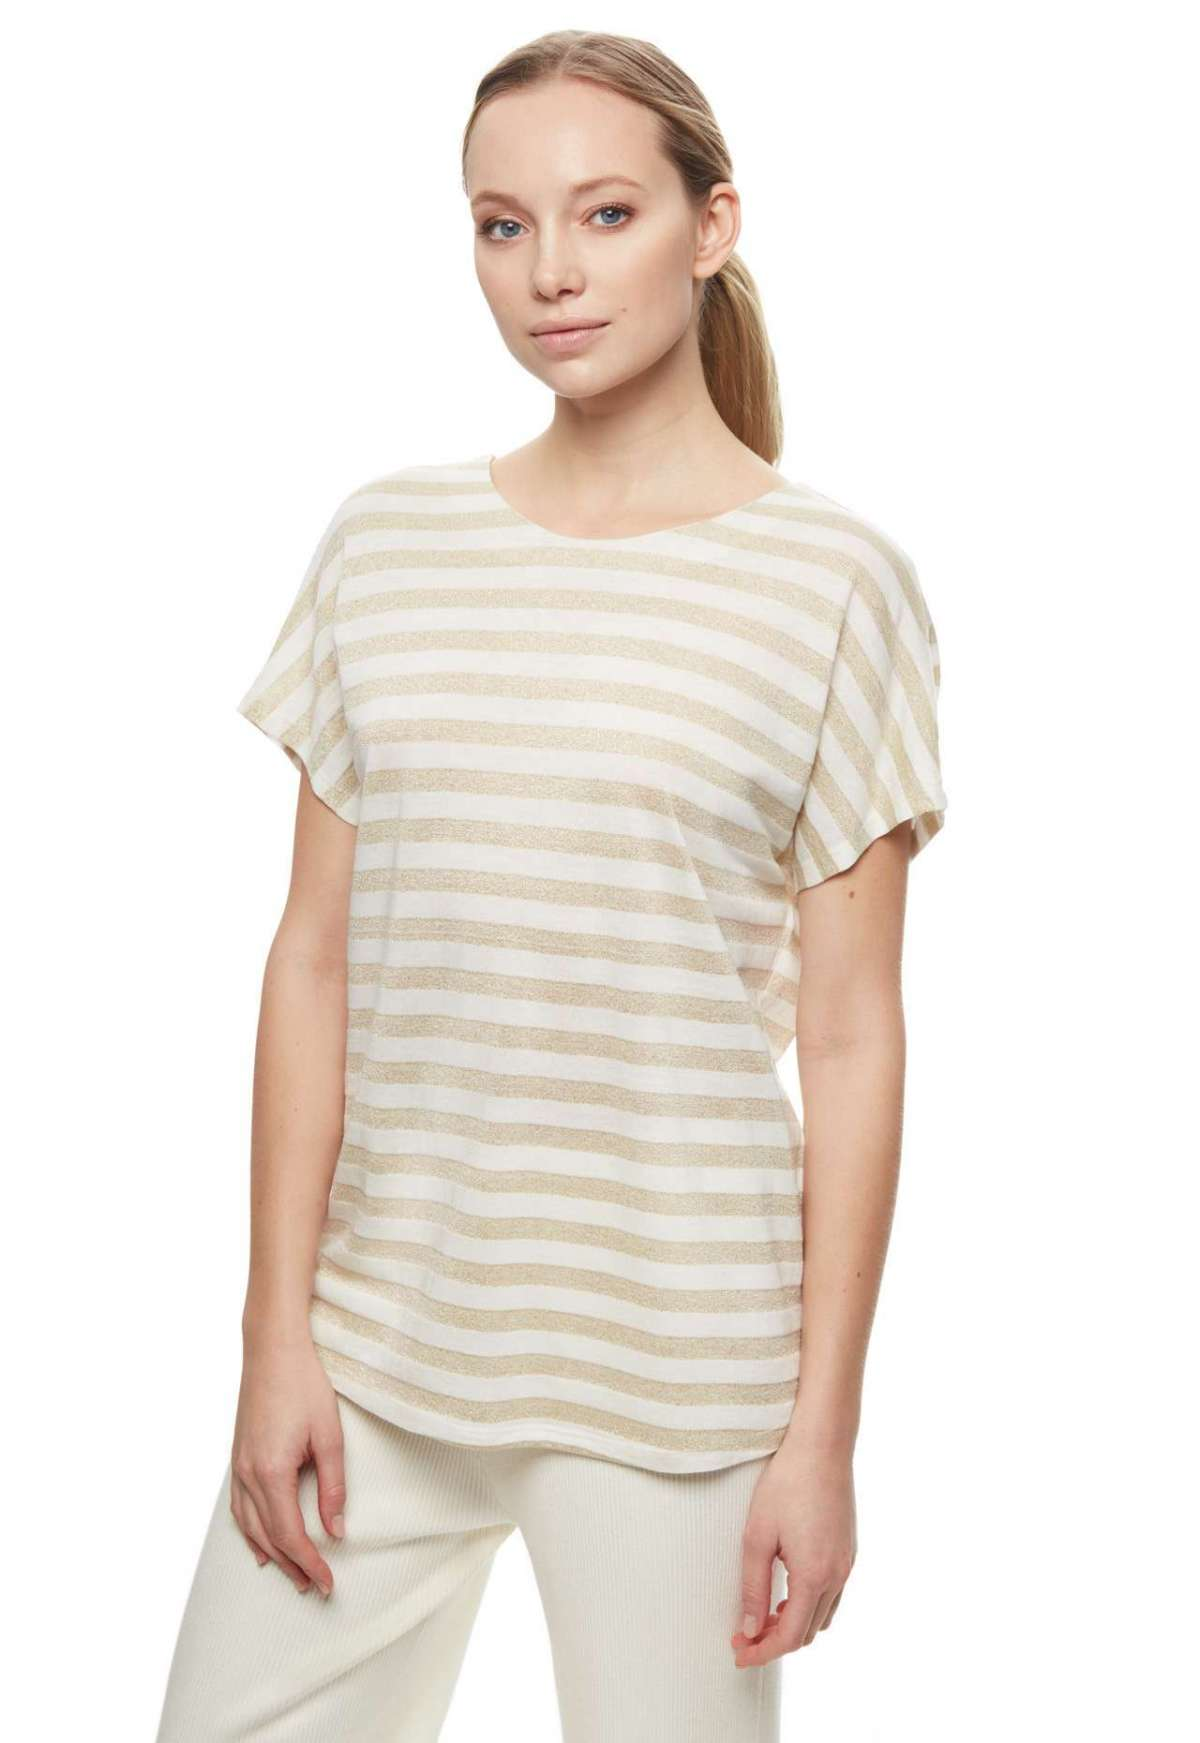 T-shirt Stefanel a righe in lurex a 69 euro